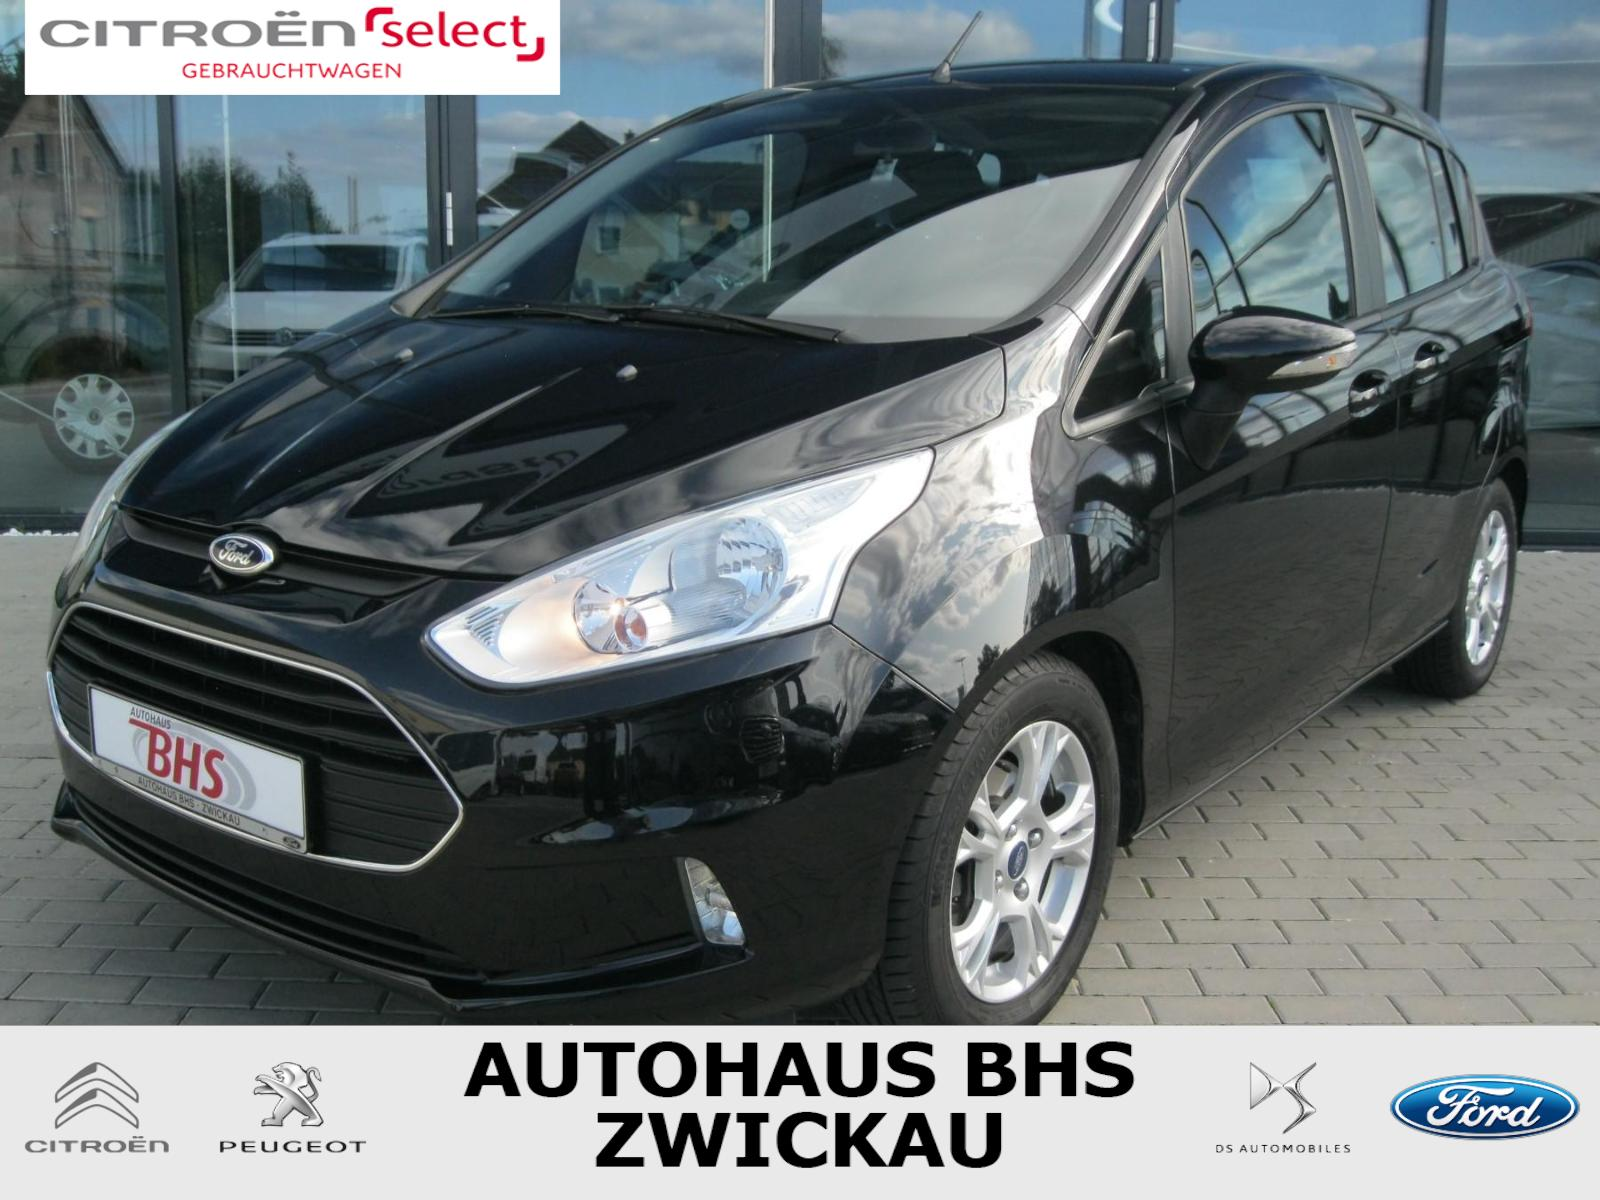 Ford B-Max 1.0 EcoBoost 100 PS SYNC Edition, Jahr 2013, Benzin